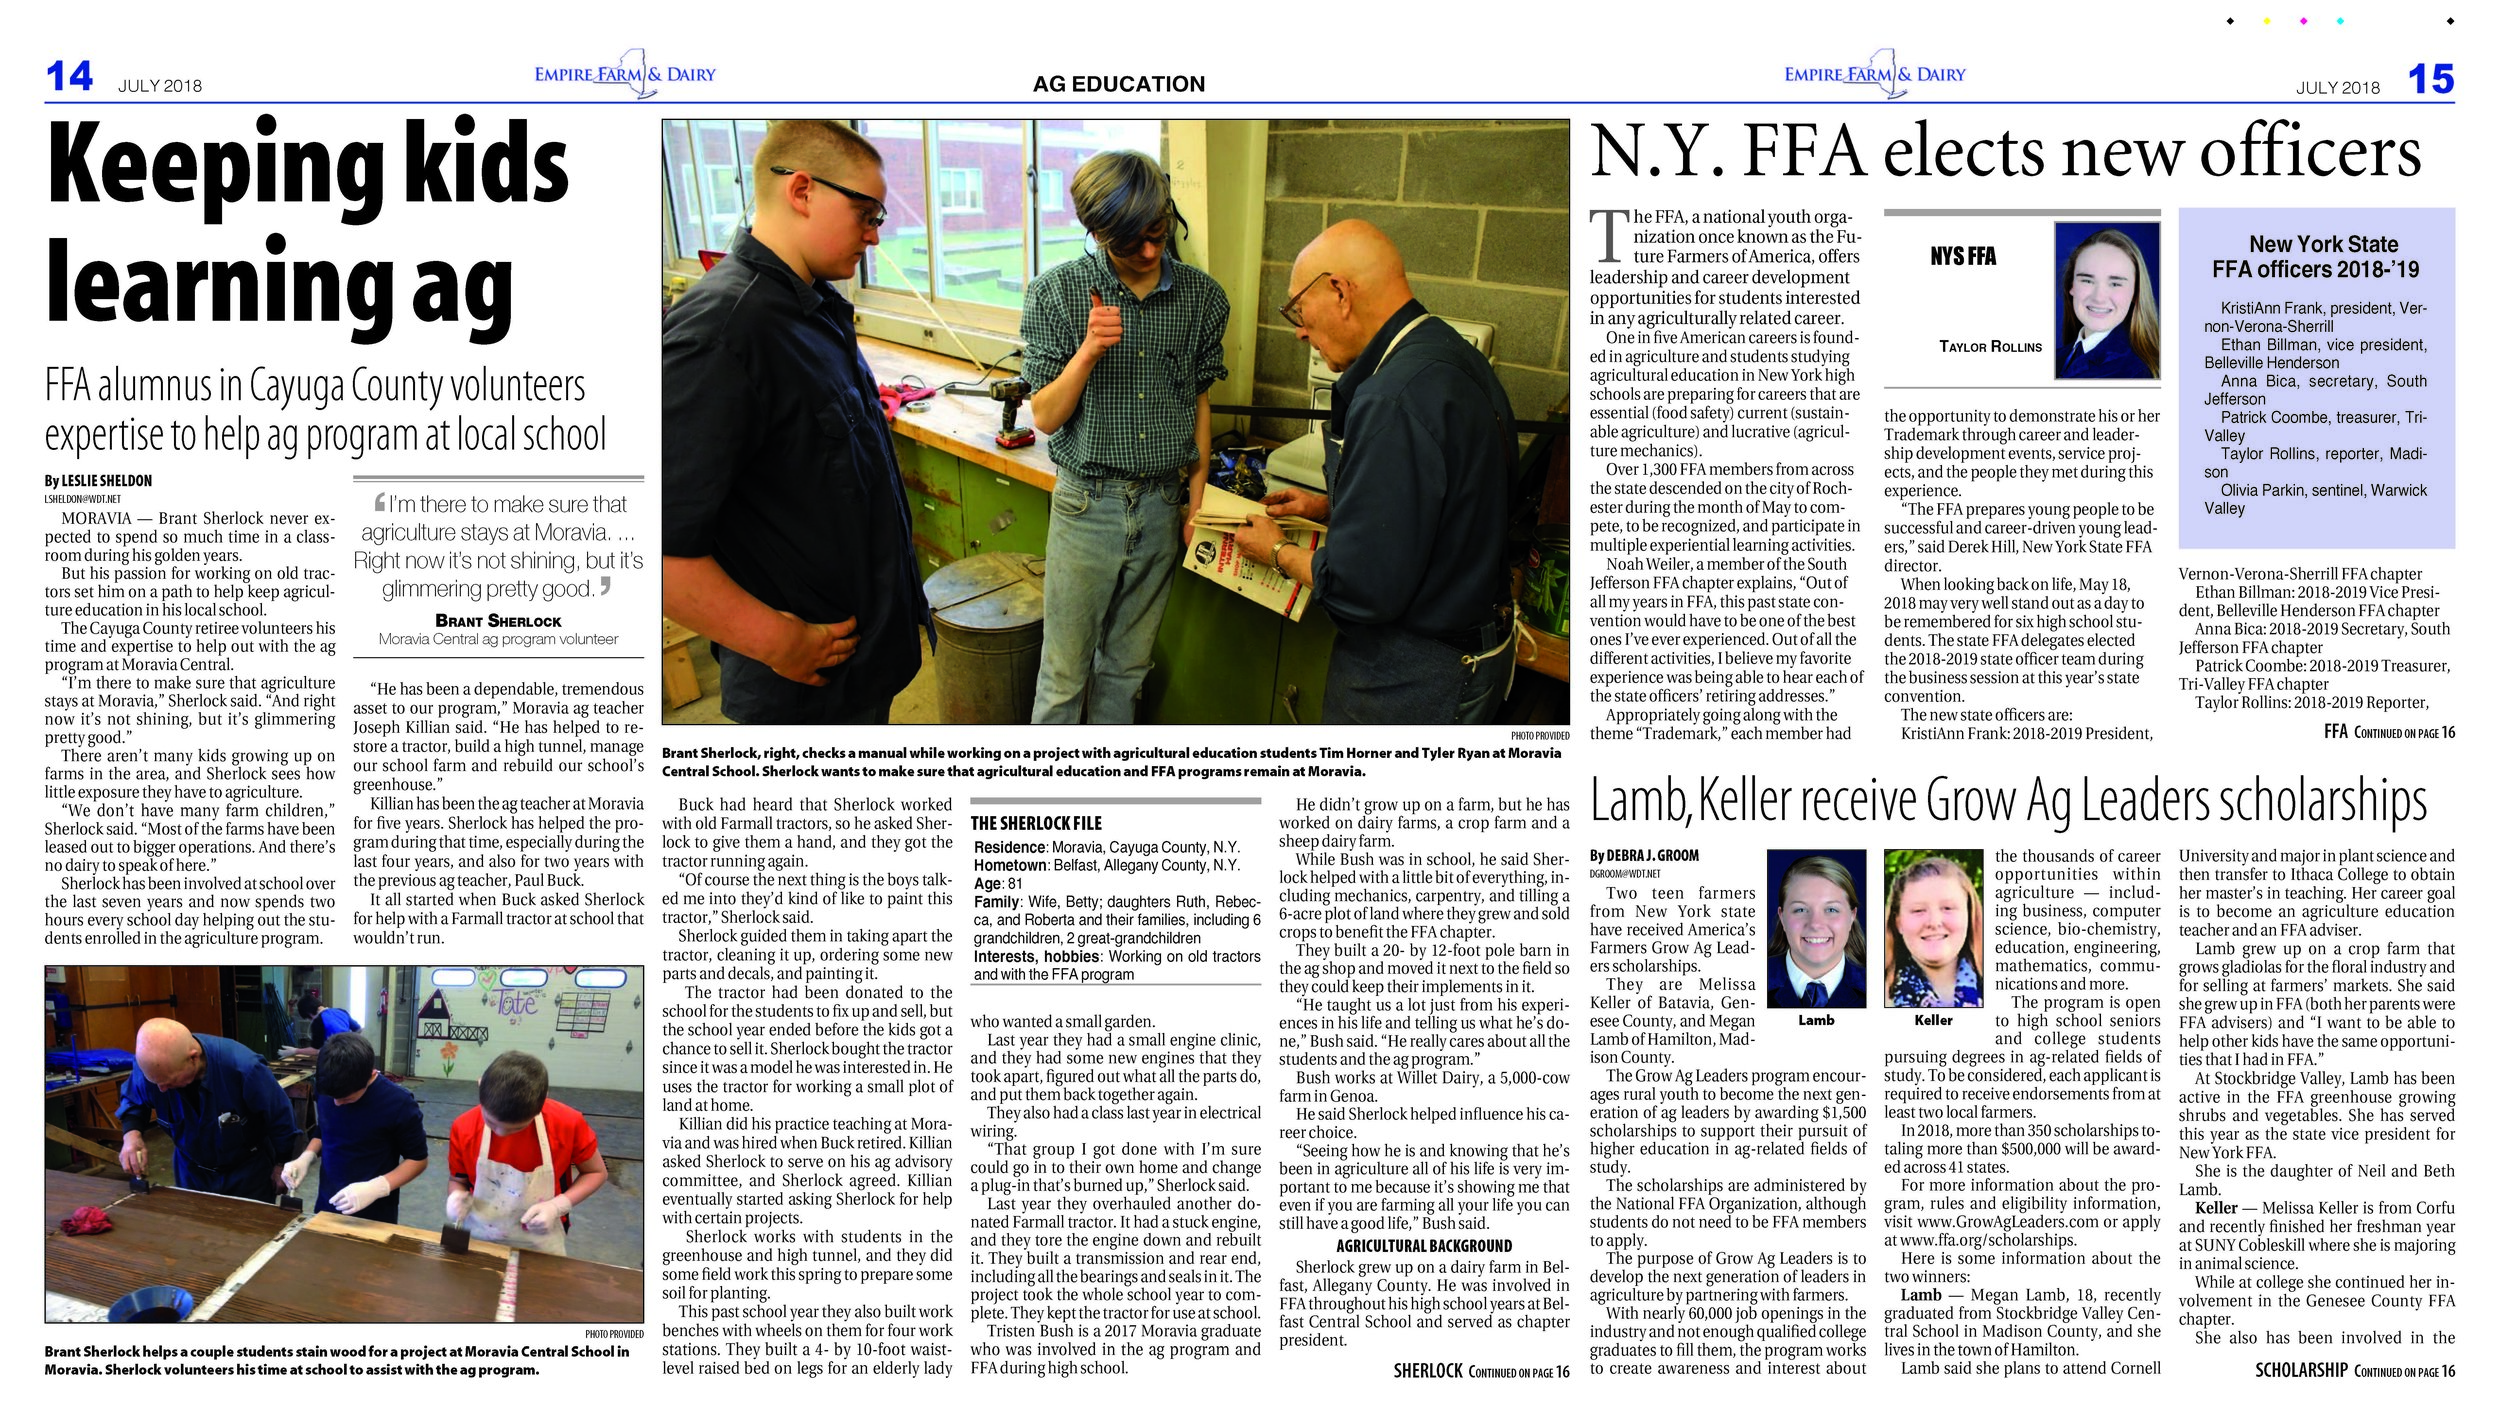 July 2018 Empire Farm and Dairy FFA articles_Page_2.jpg